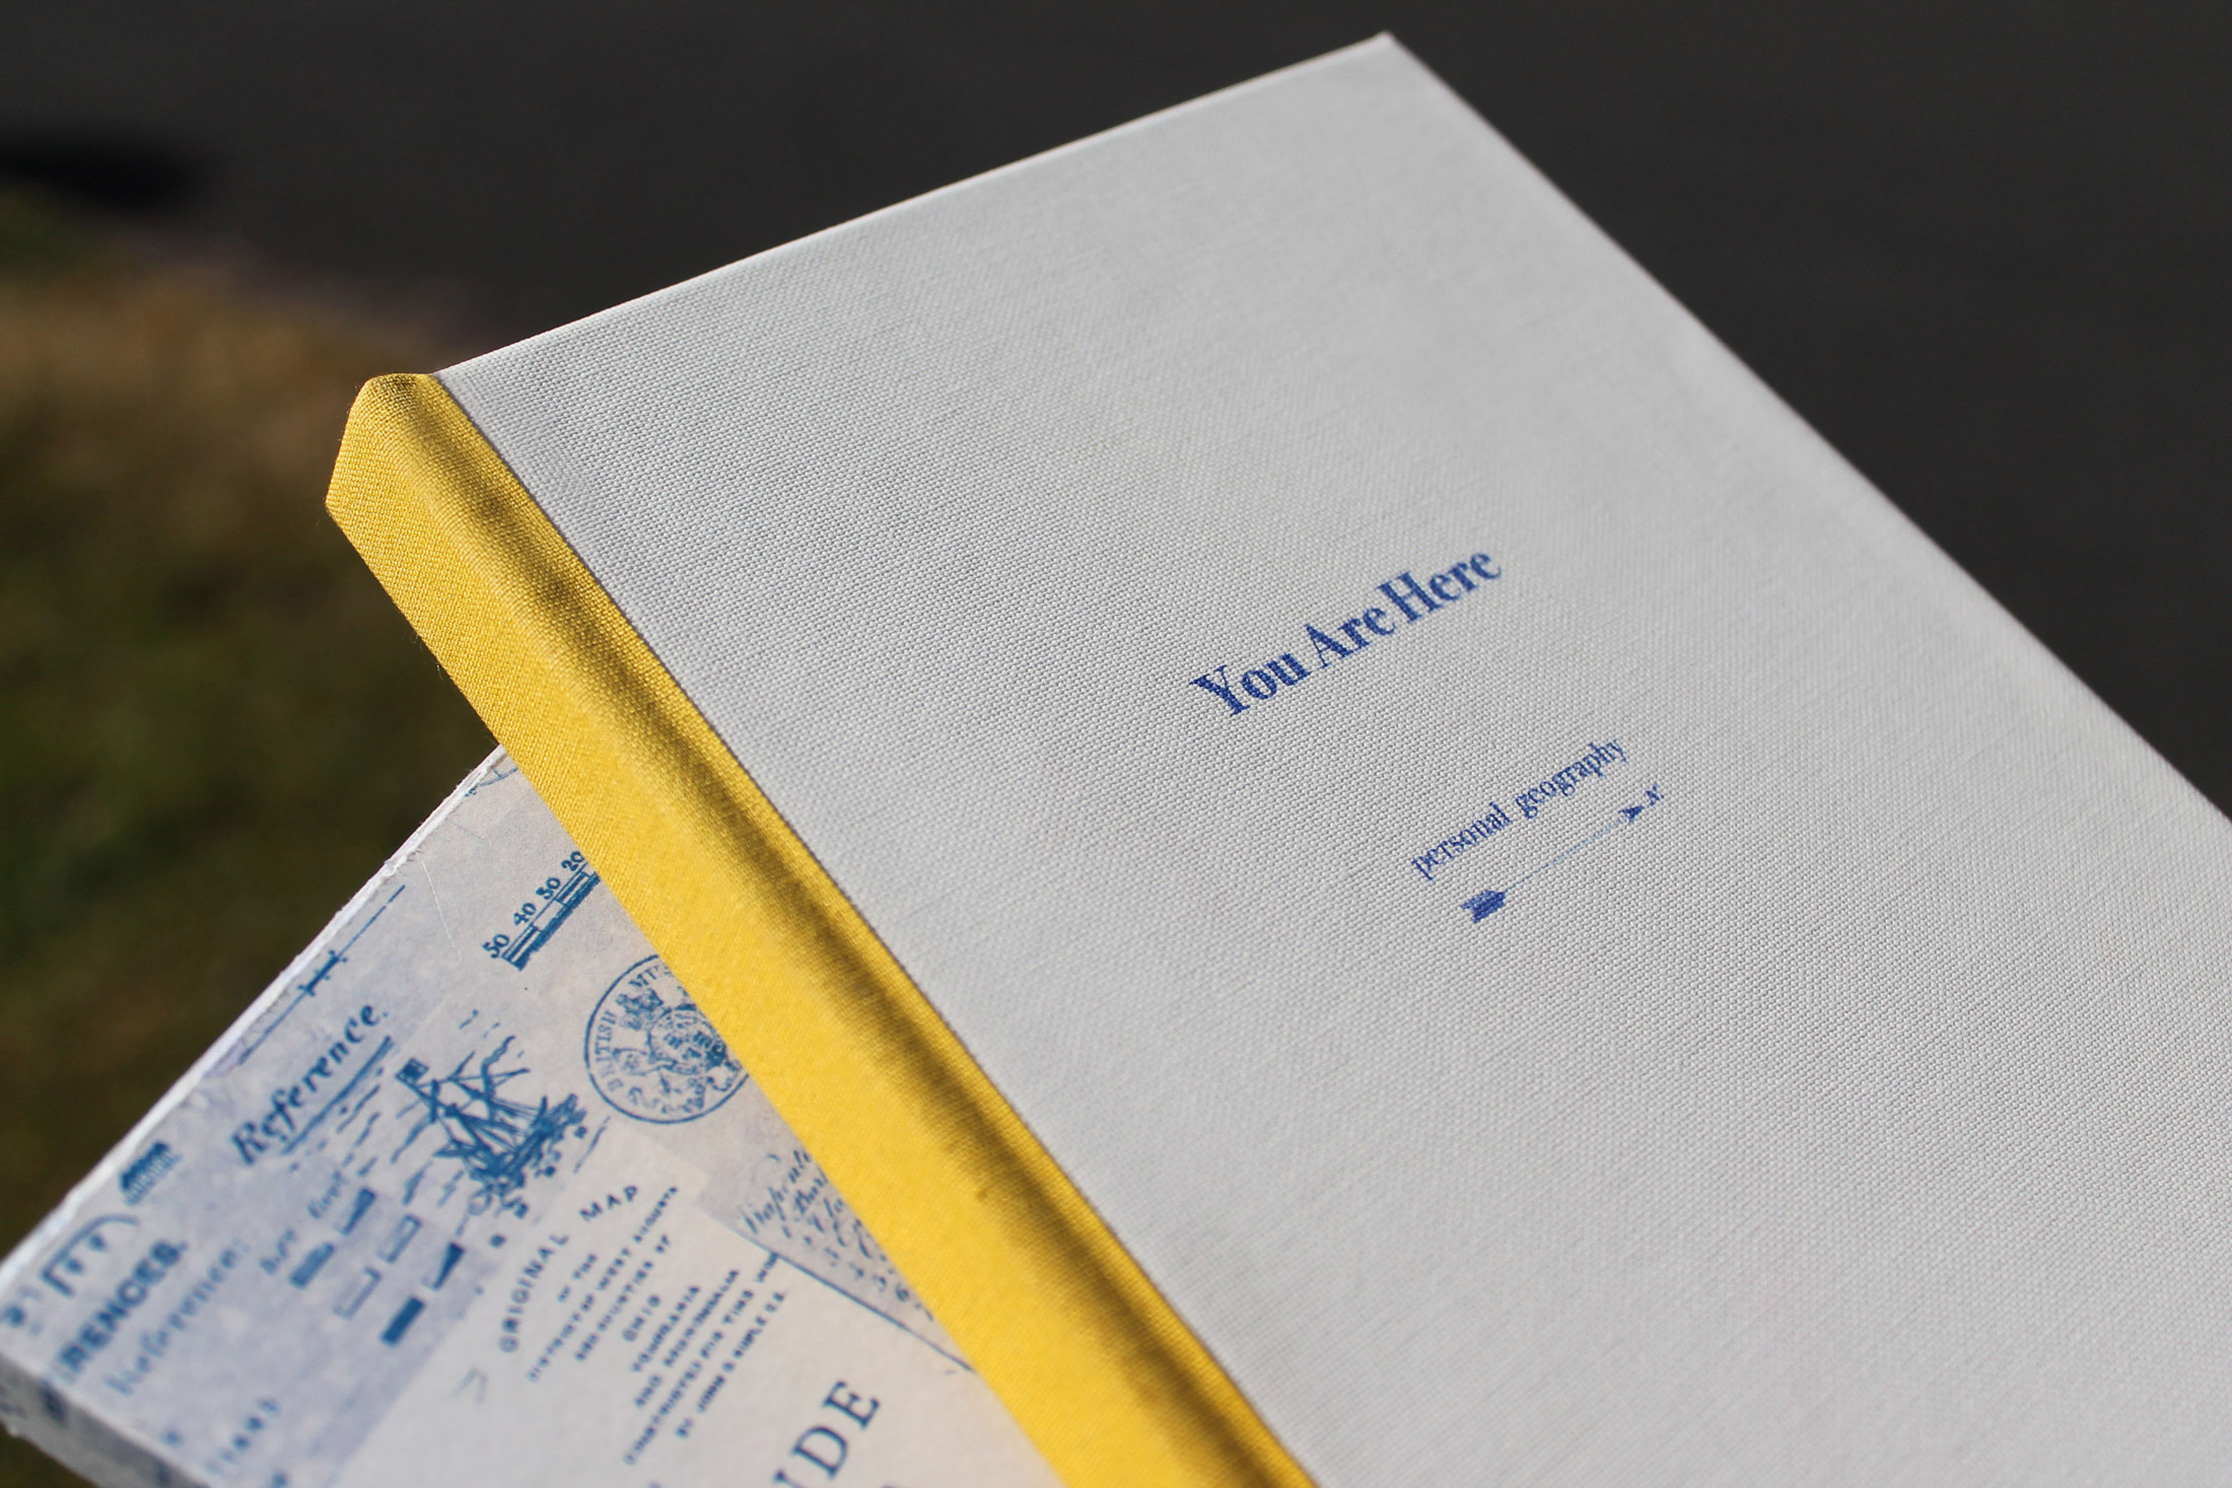 photograph of close-up of cloth bound cover and spine